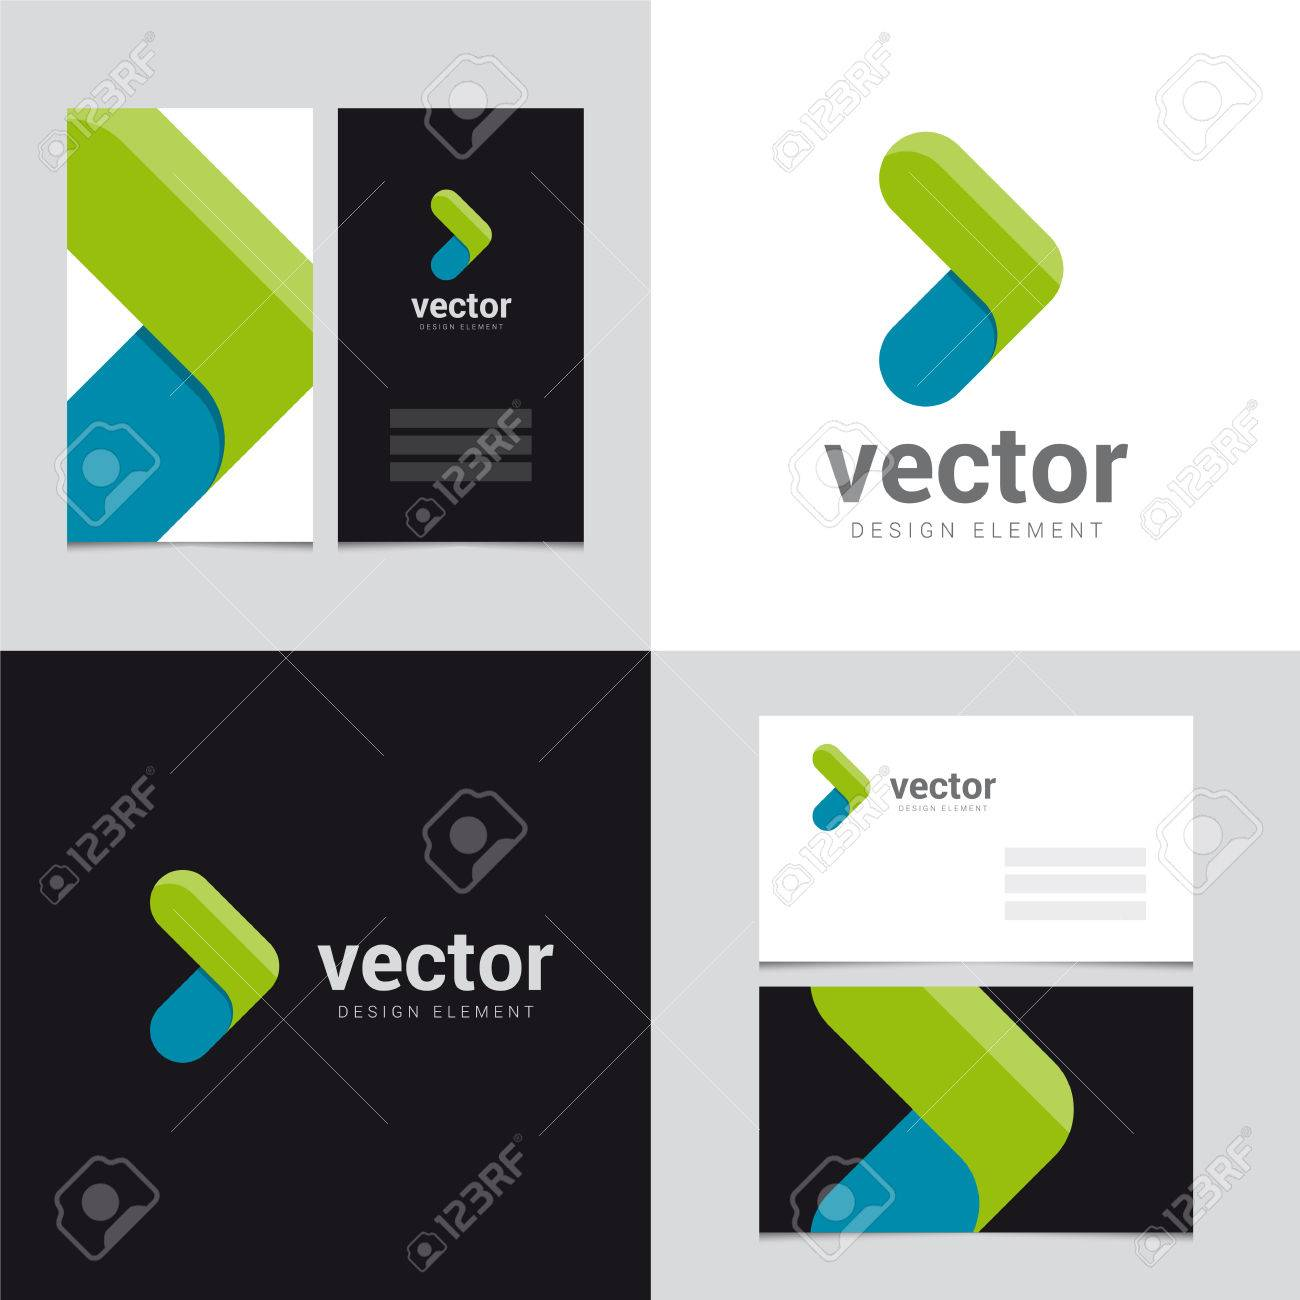 logo design element with two business cards template  27  vector